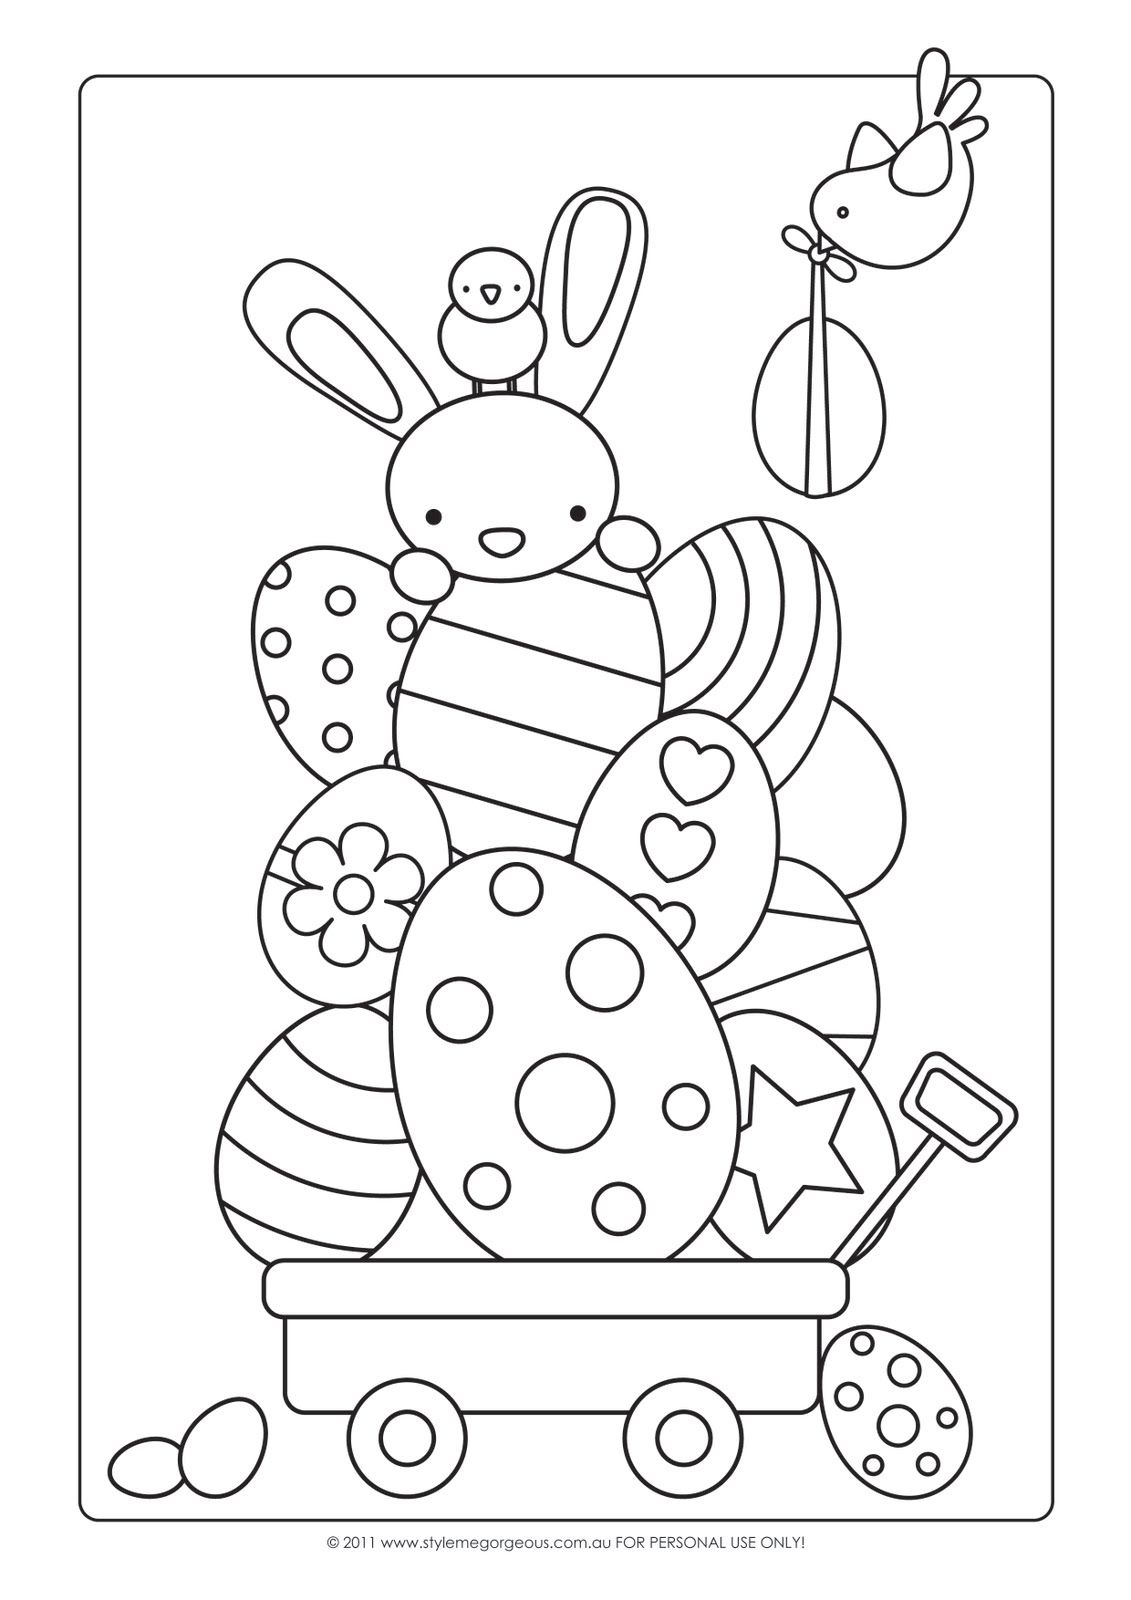 Style Me Gorgeous Free Easter Colour In Page Easter Bunny Colouring Easter Colors Easter Coloring Pages